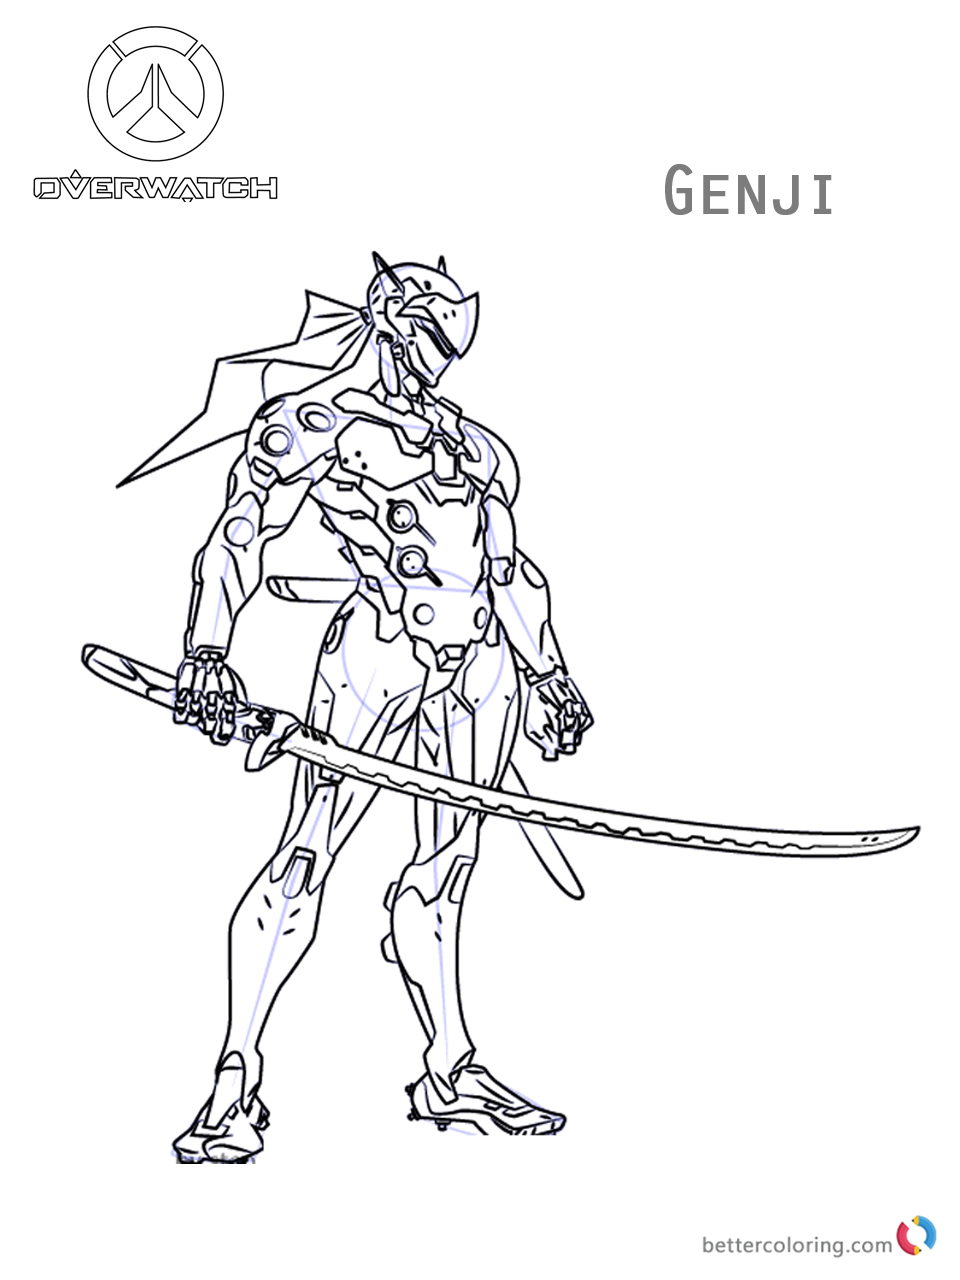 Genji from overwatch coloring pages free printable for Overwatch coloring pages